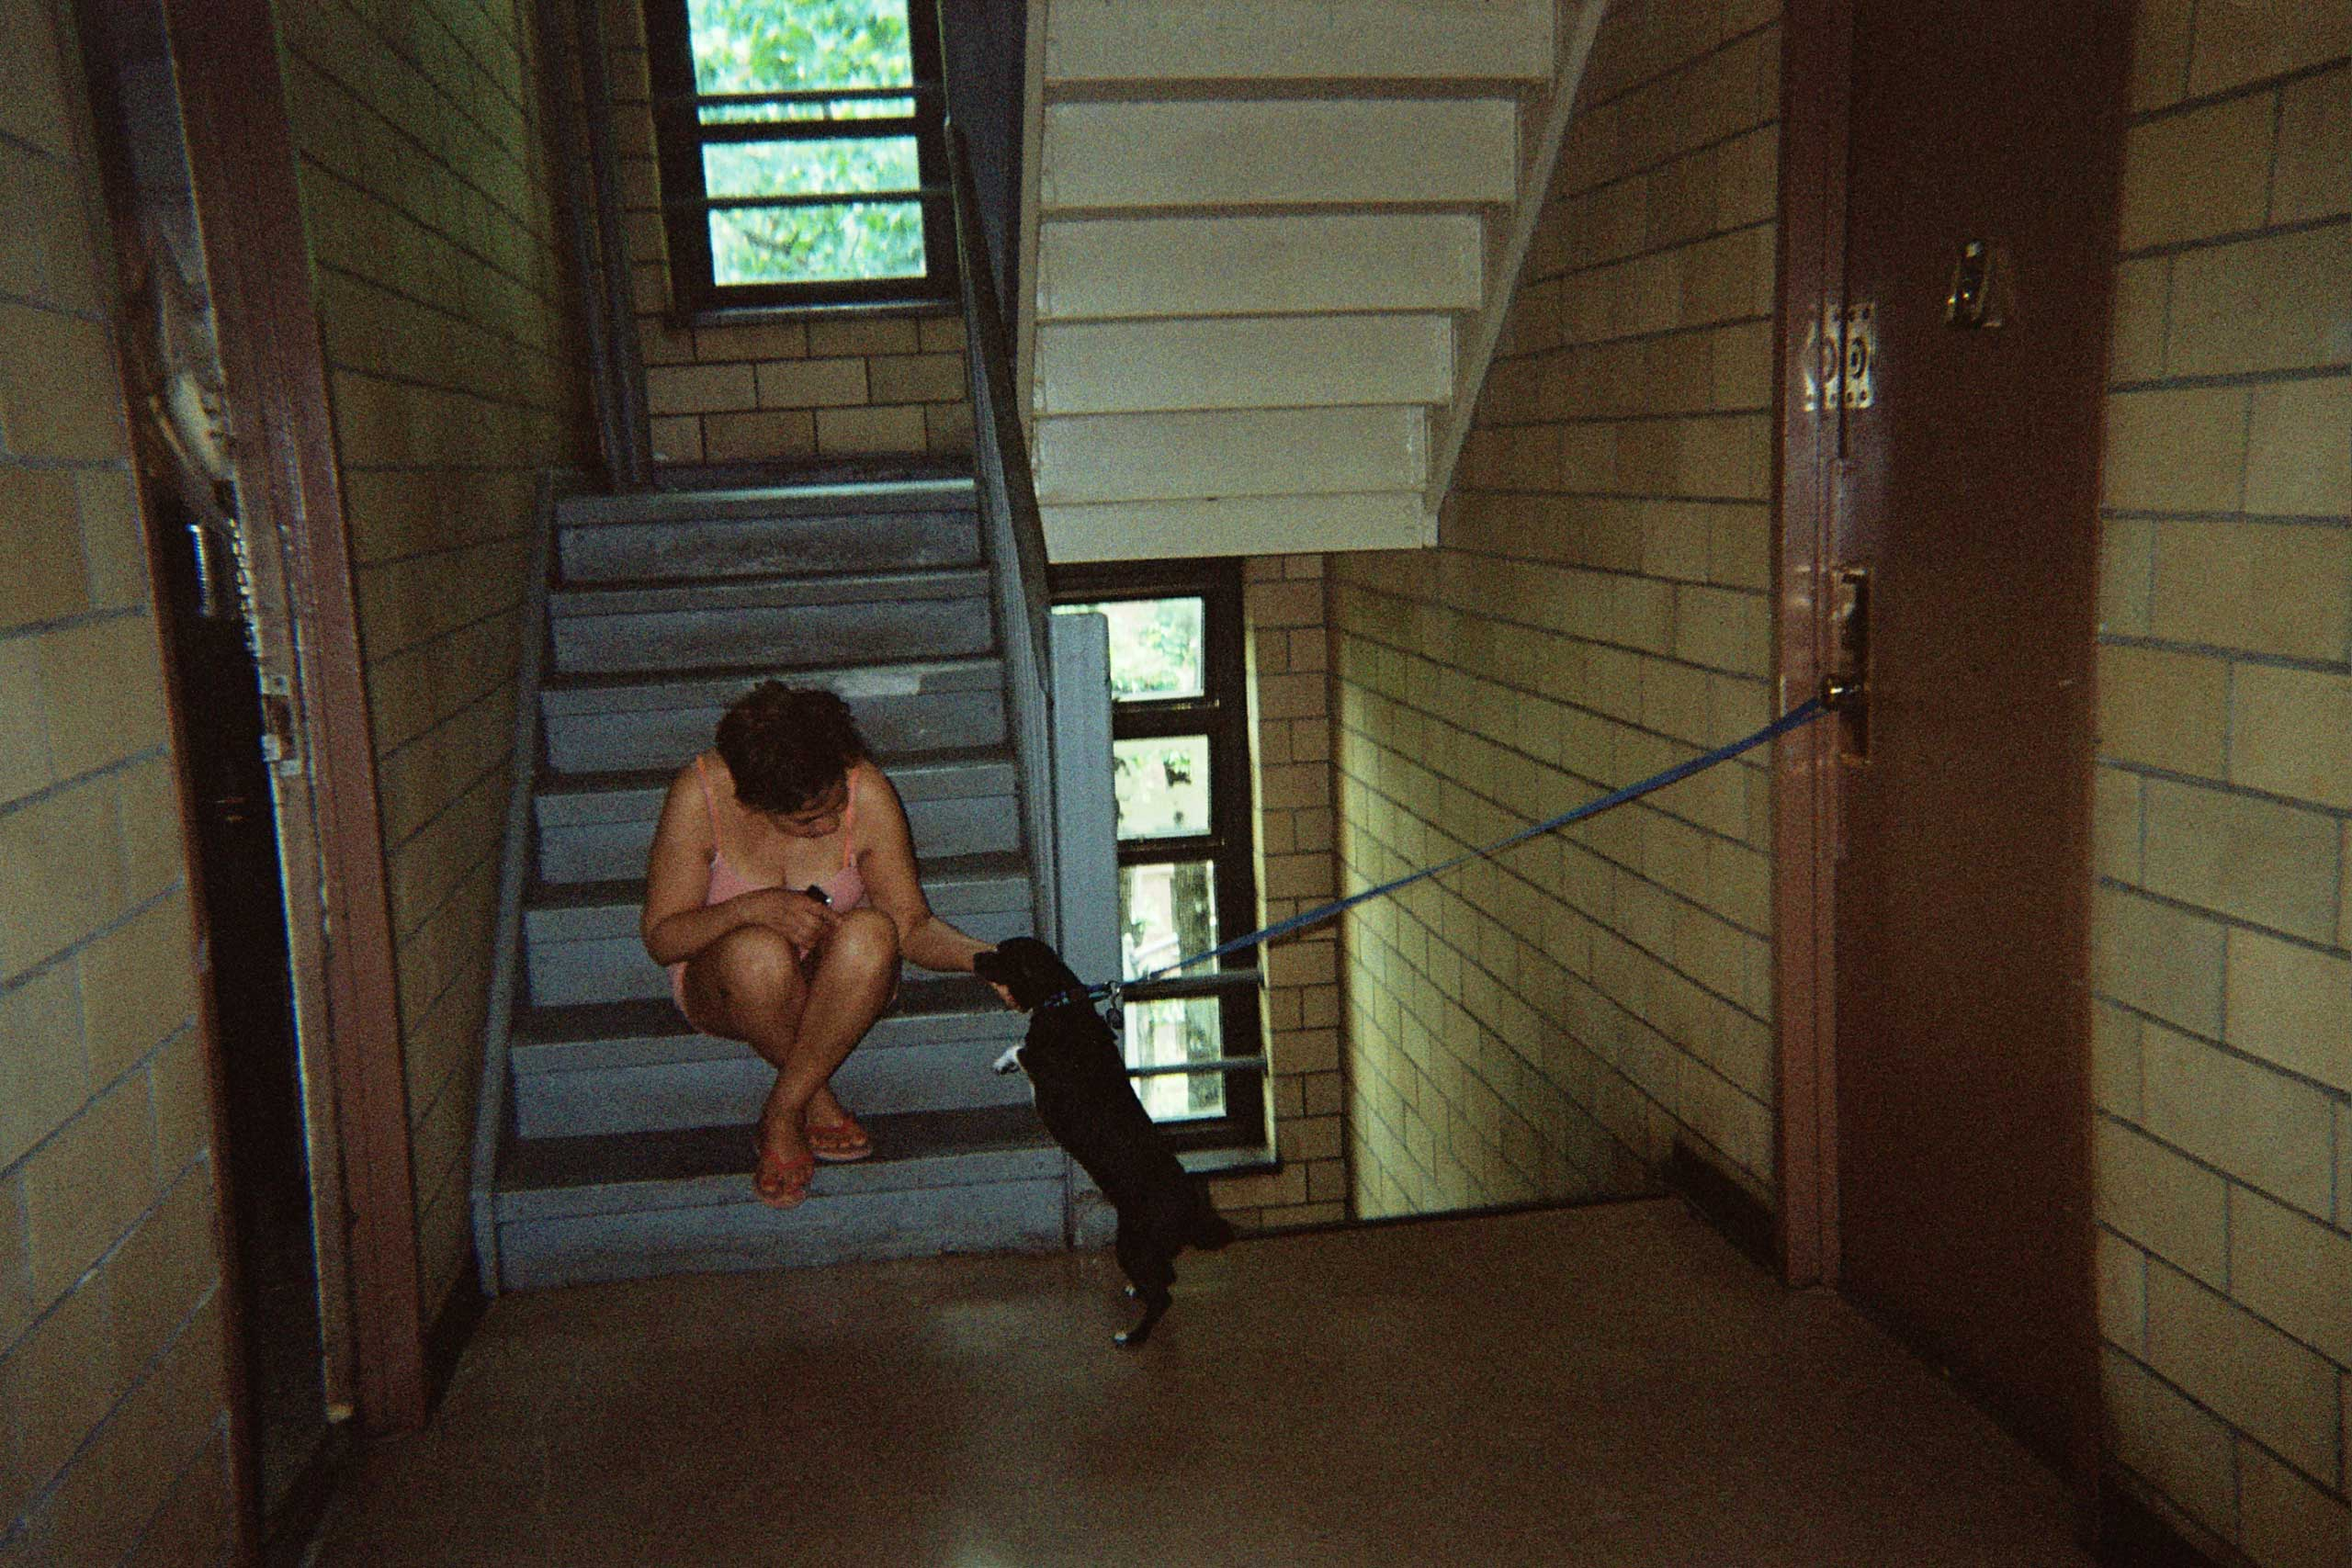 A neighbor looks after another neighbor's dog at the Amsterdam Houses on the Upper West Side, New York City.